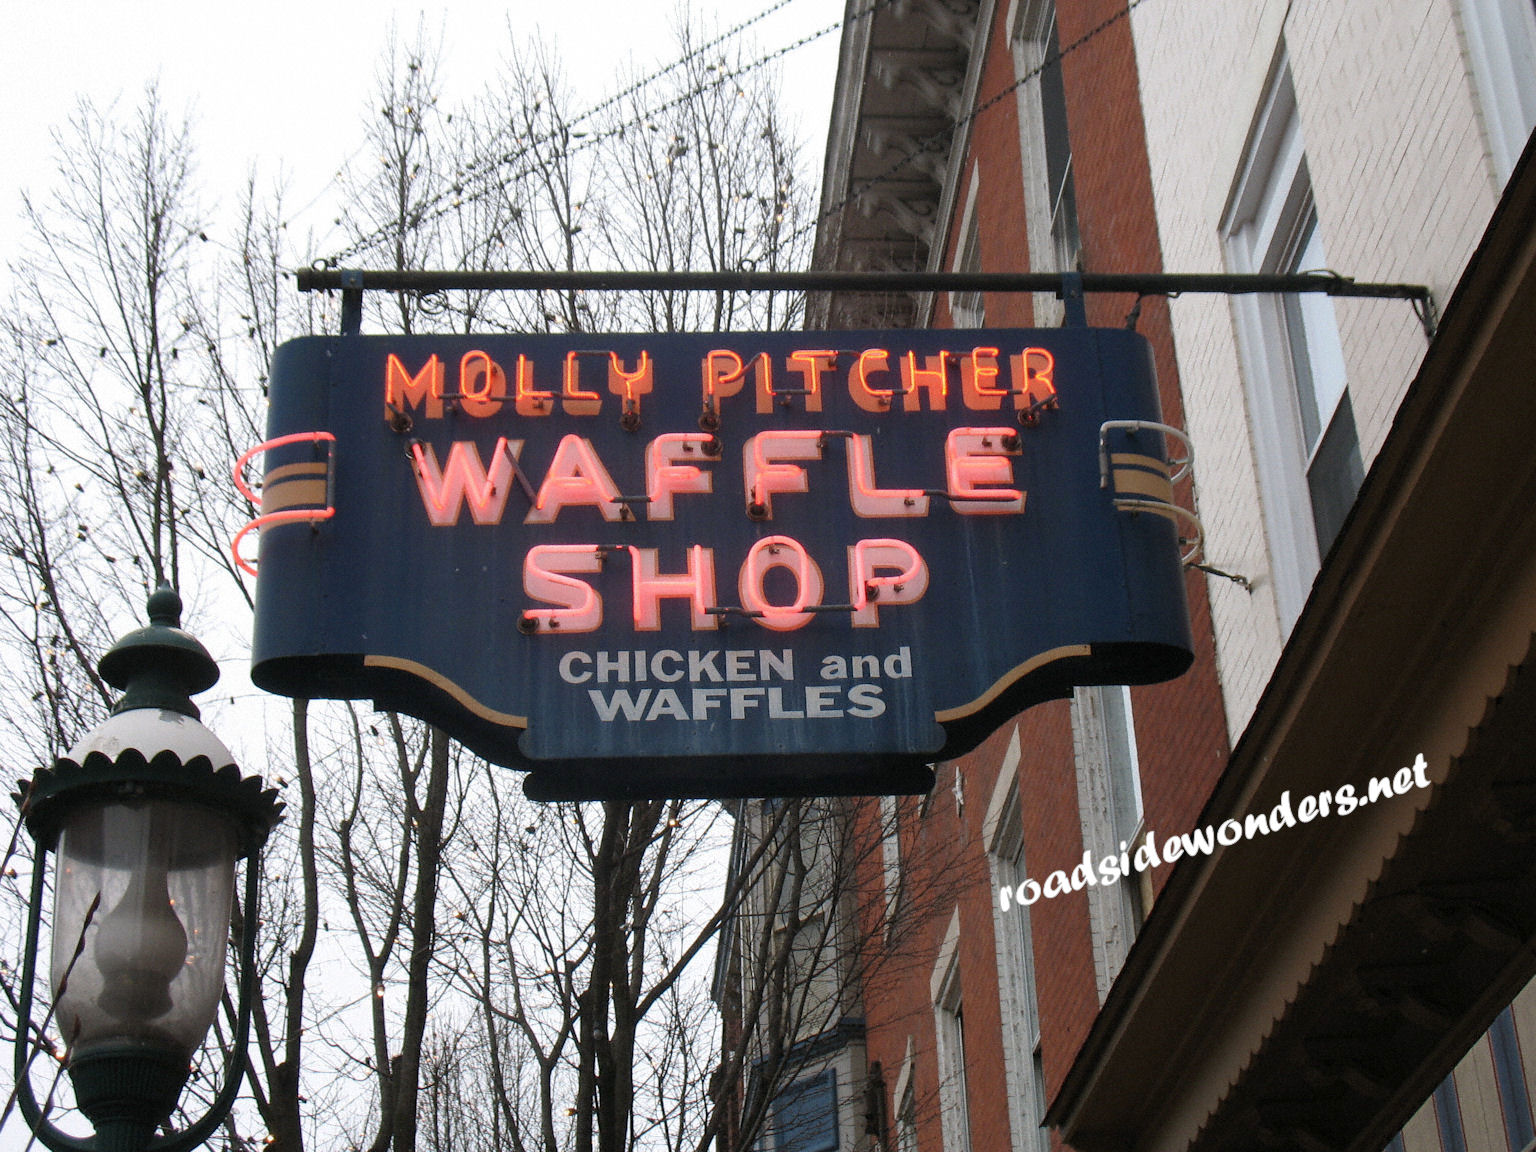 Vintage Neon – Molly Pitcher Waffle Shop